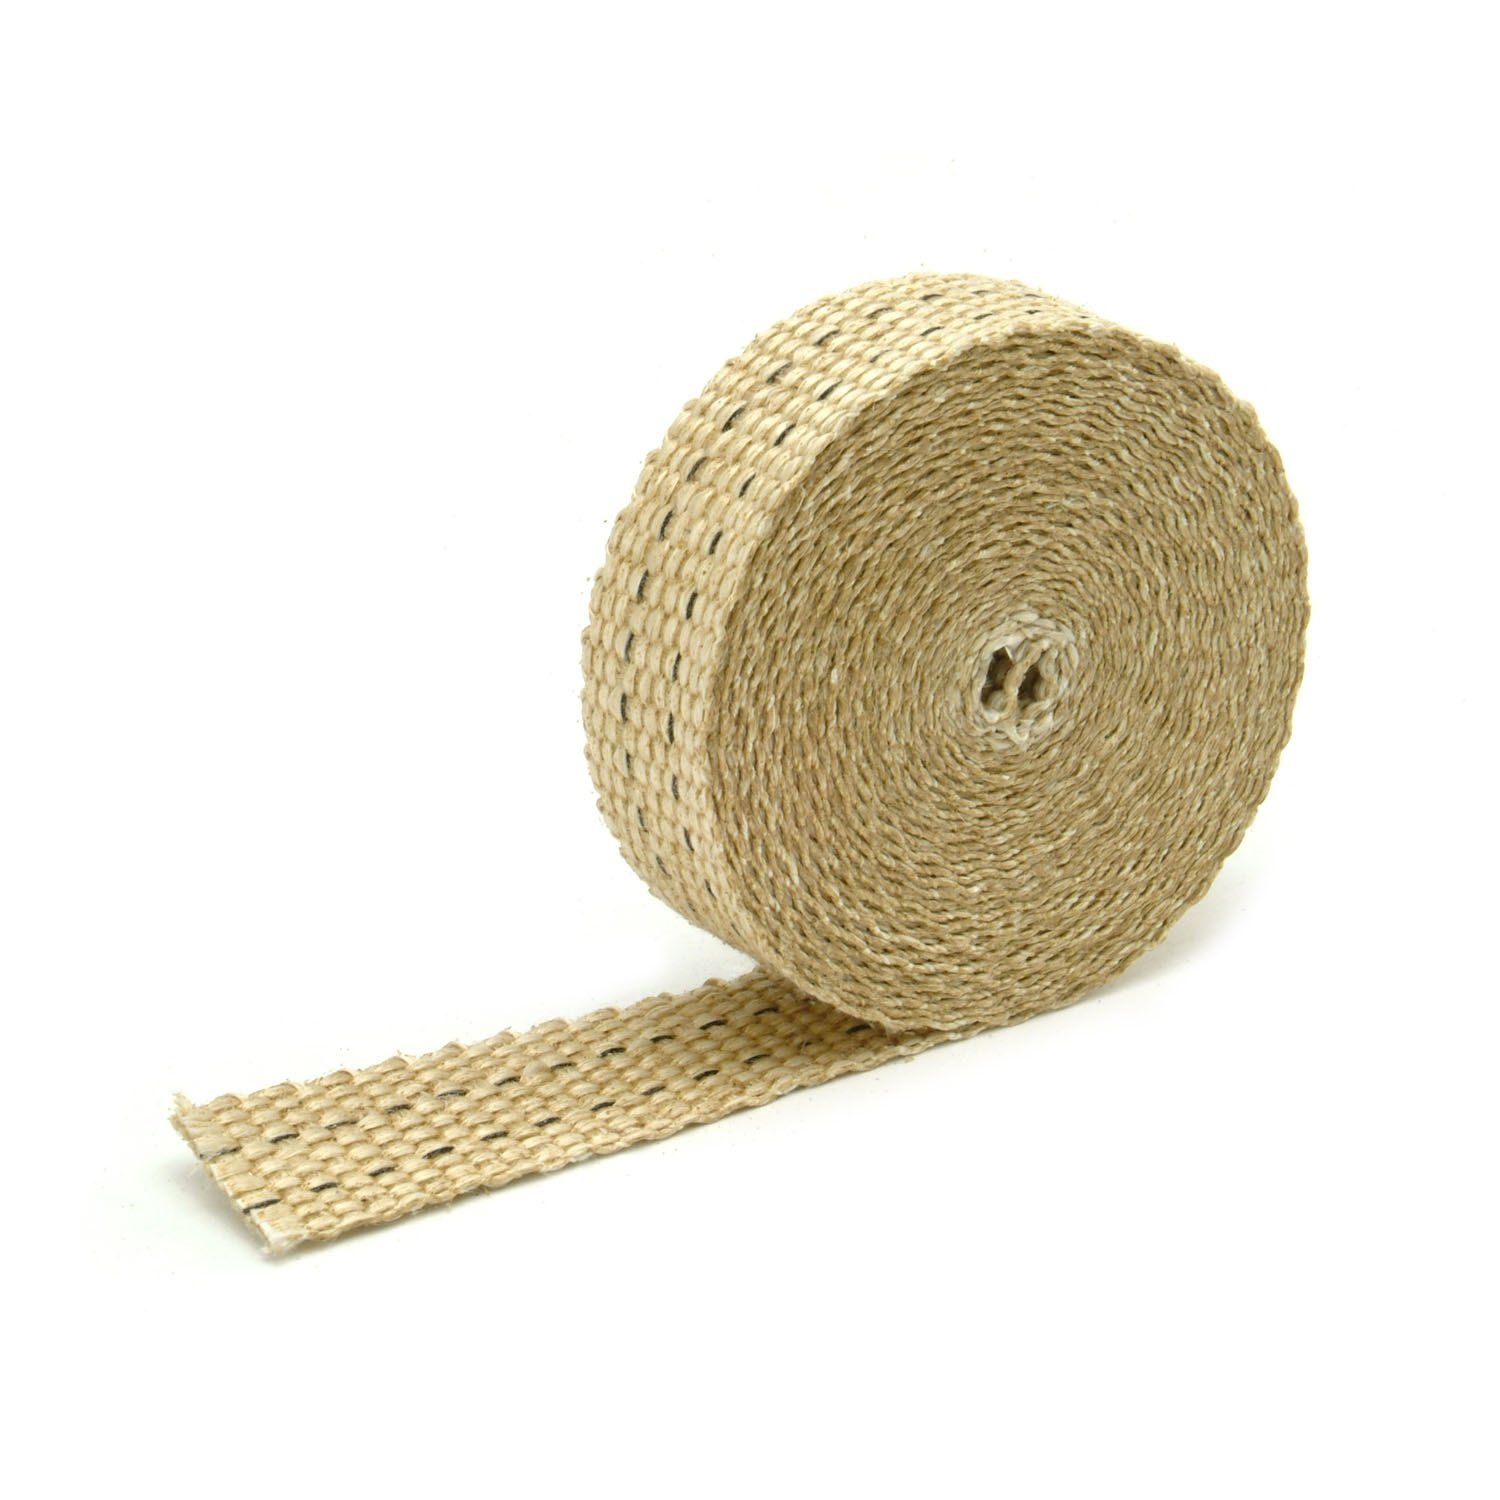 DEI 010105 Exhaust Heat Wrap, 1'' x 15' Roll - Tan